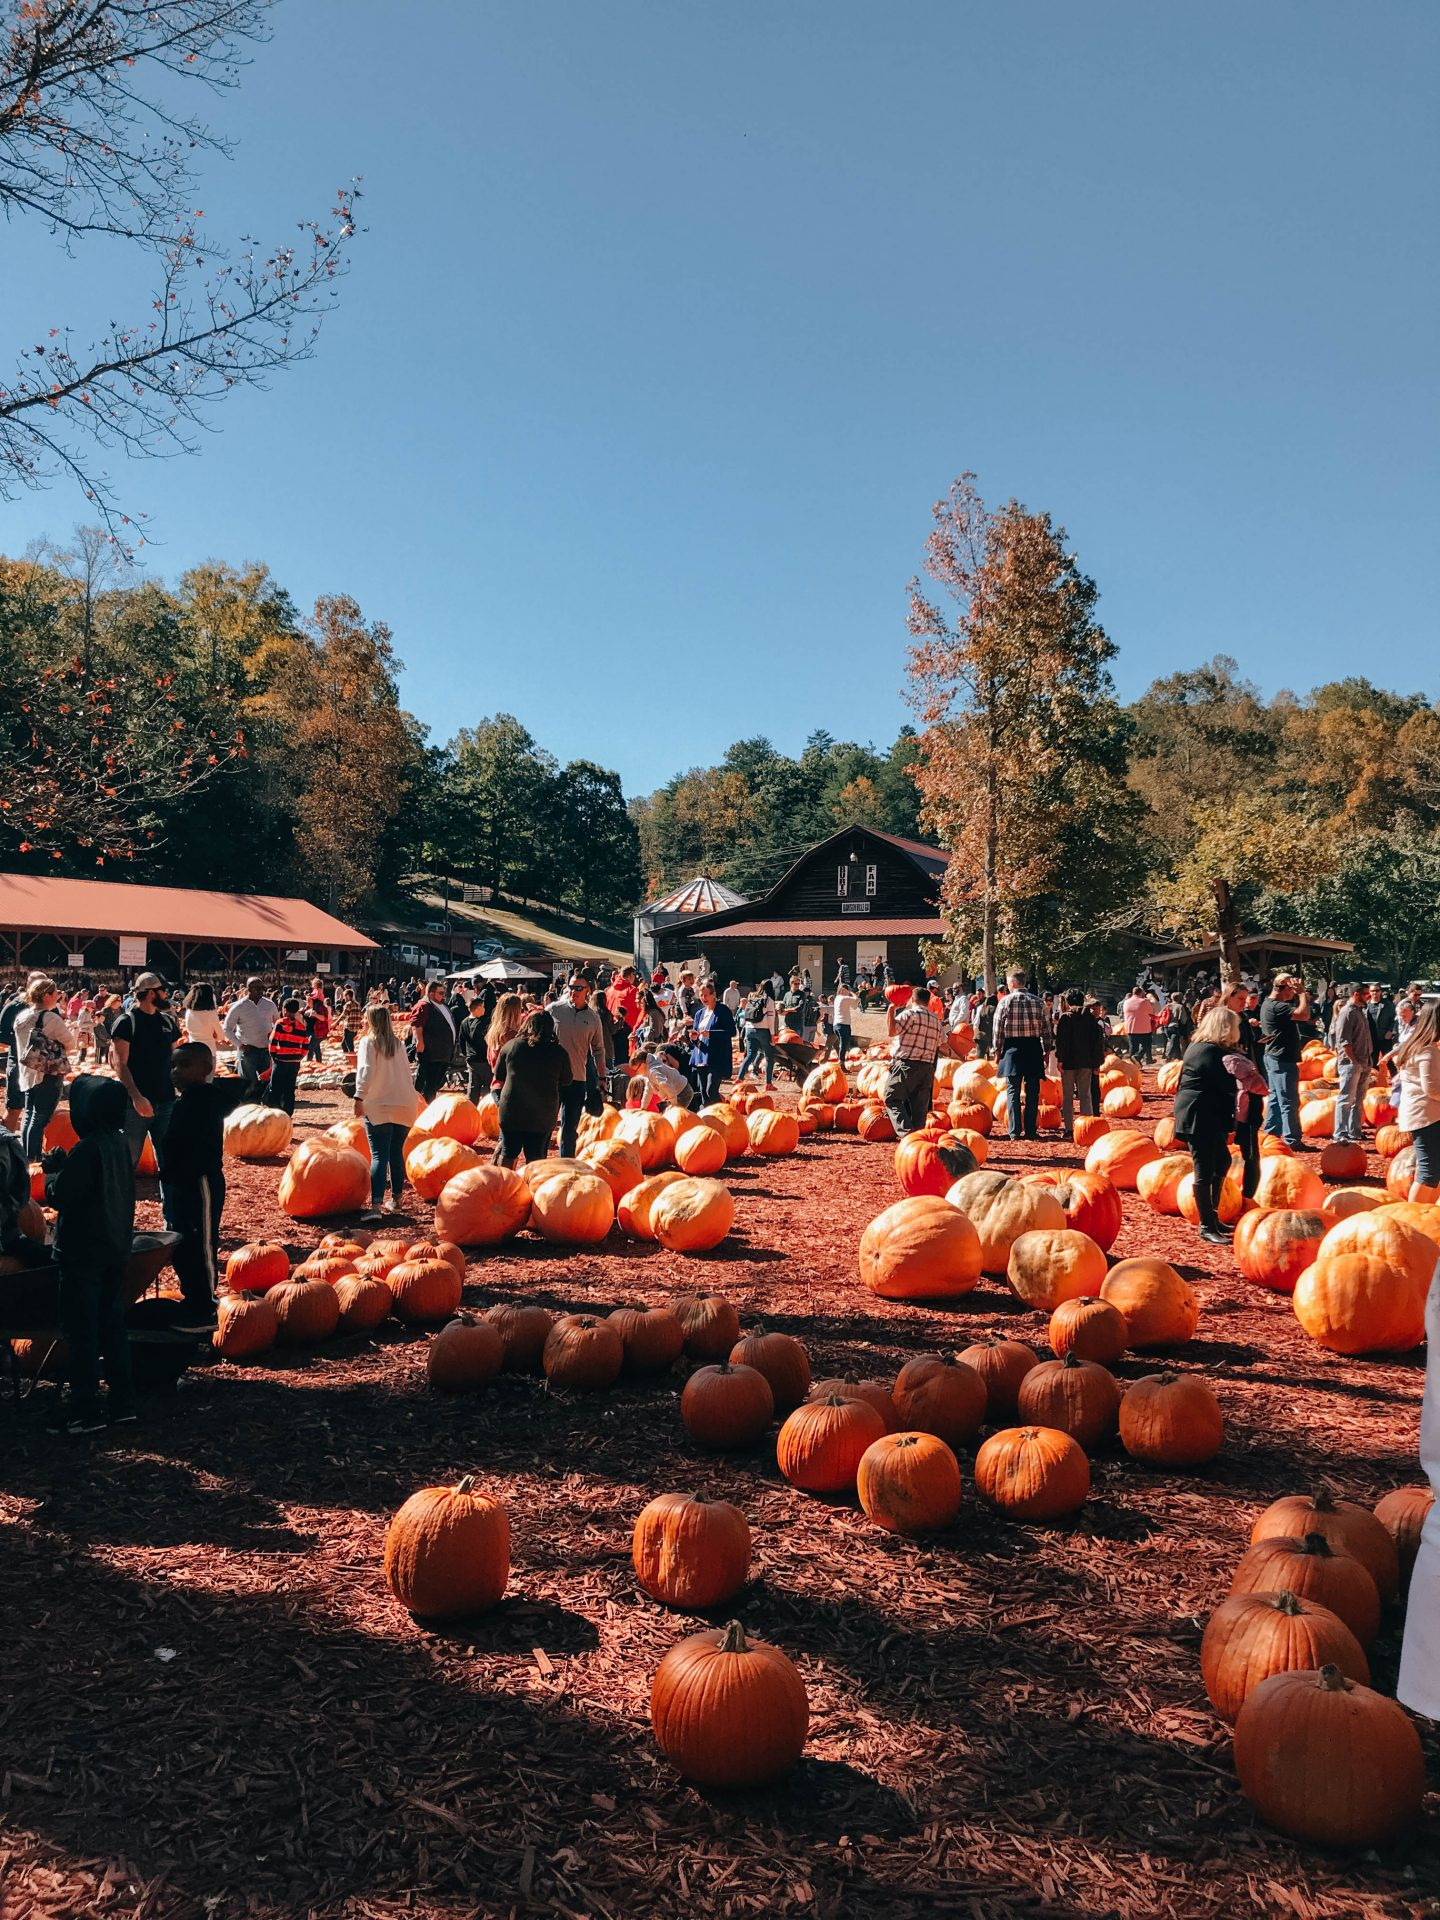 My Favorite Things To Do In Georgia During Fall